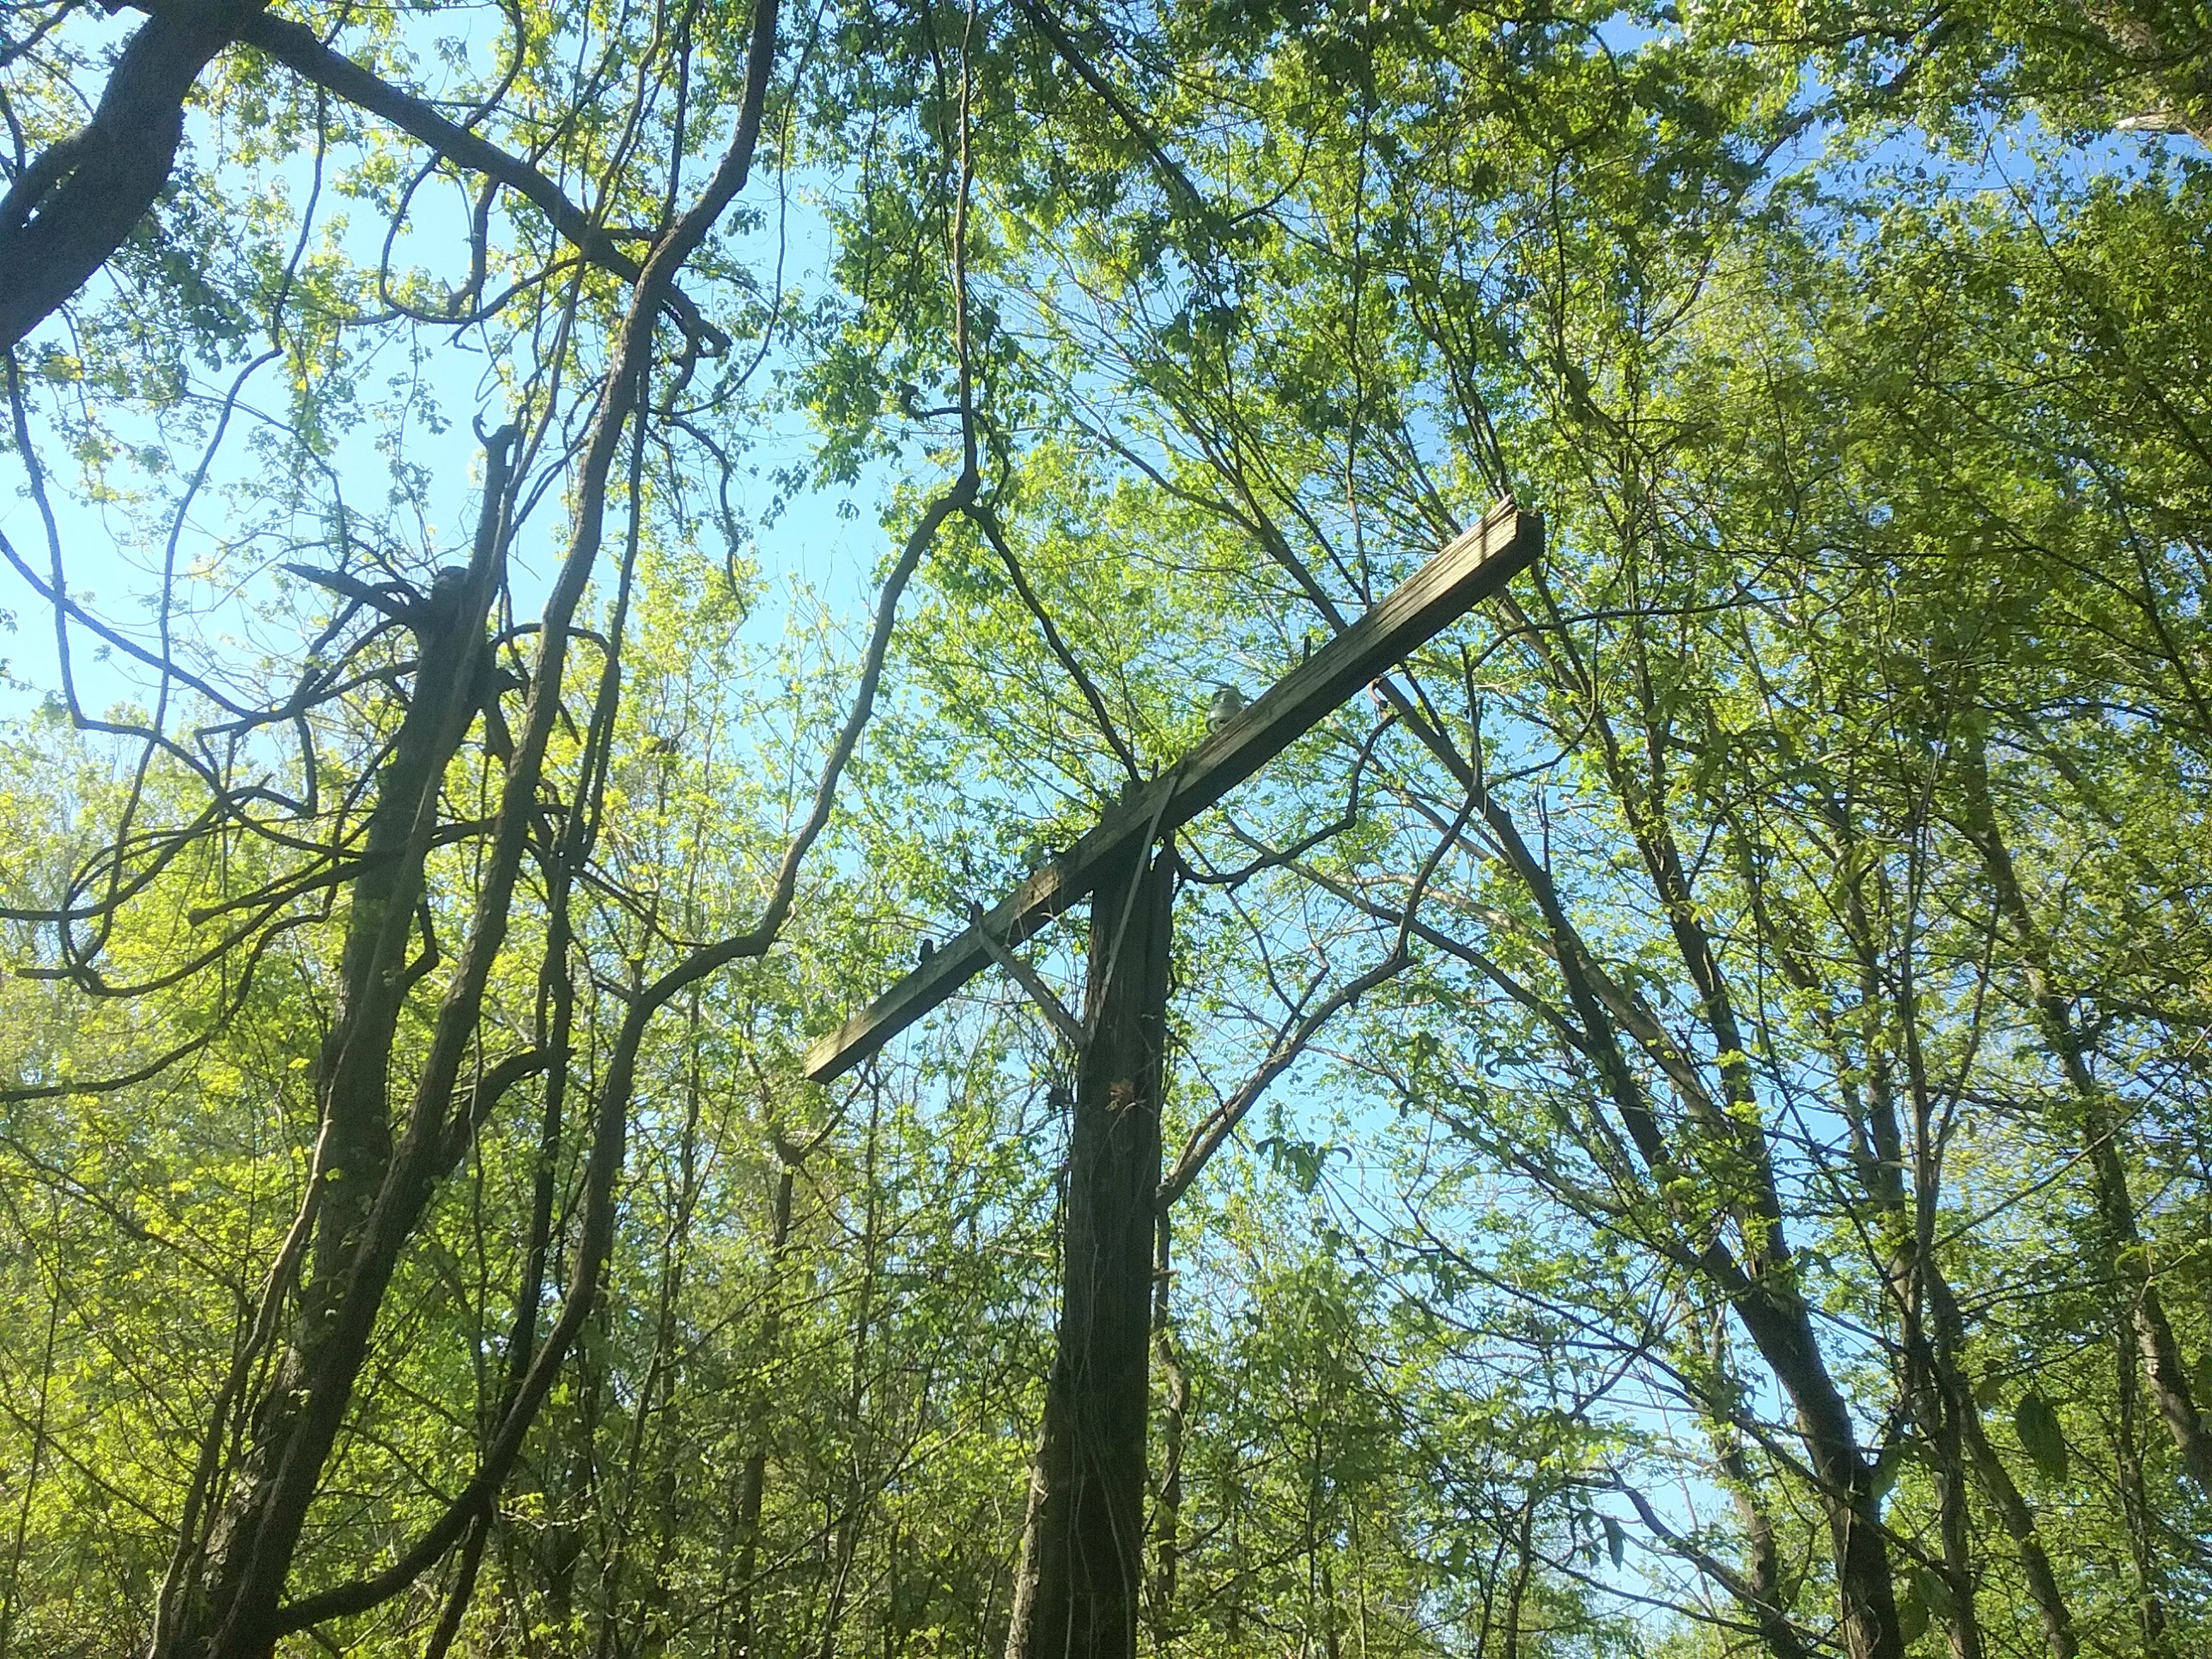 Top portion of an old telegraph pole stands among trees lining the trail